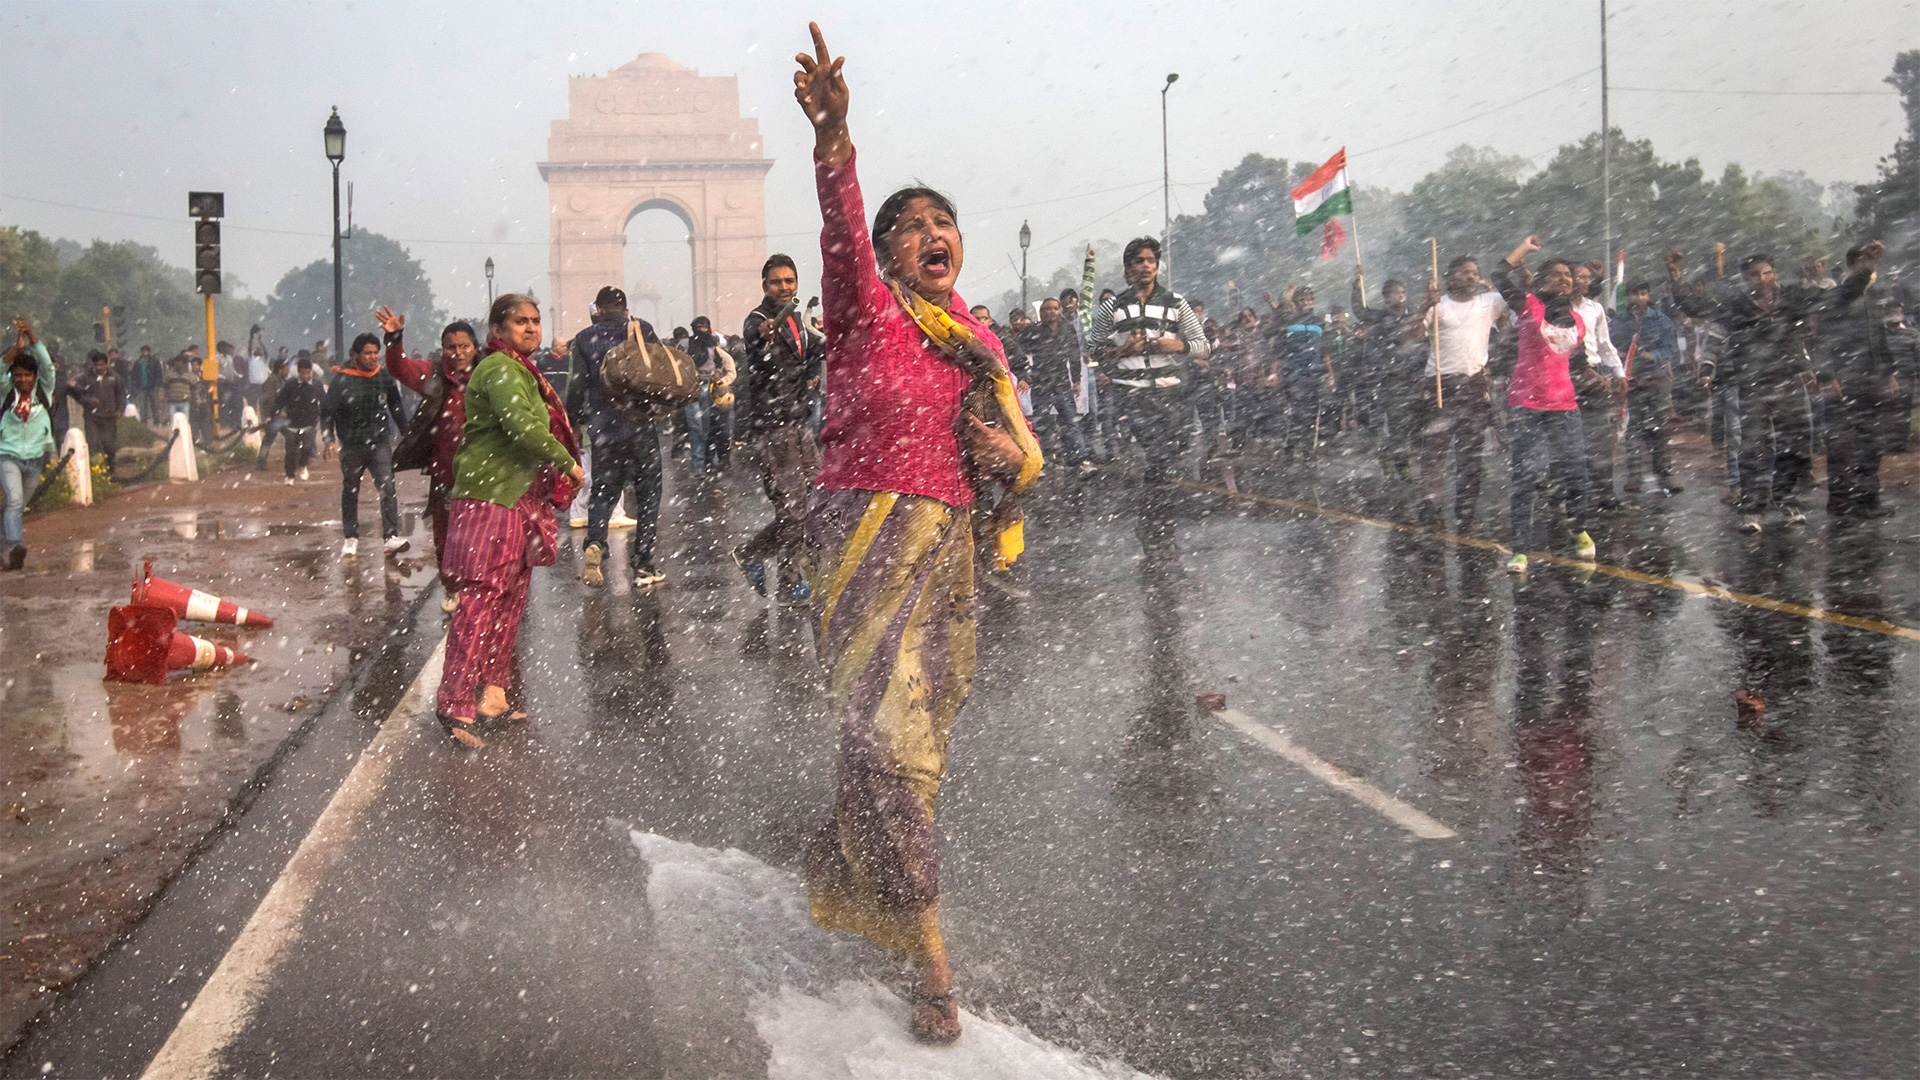 A woman marches down a Delhi street shouting in protest as water cannons shower the scene.